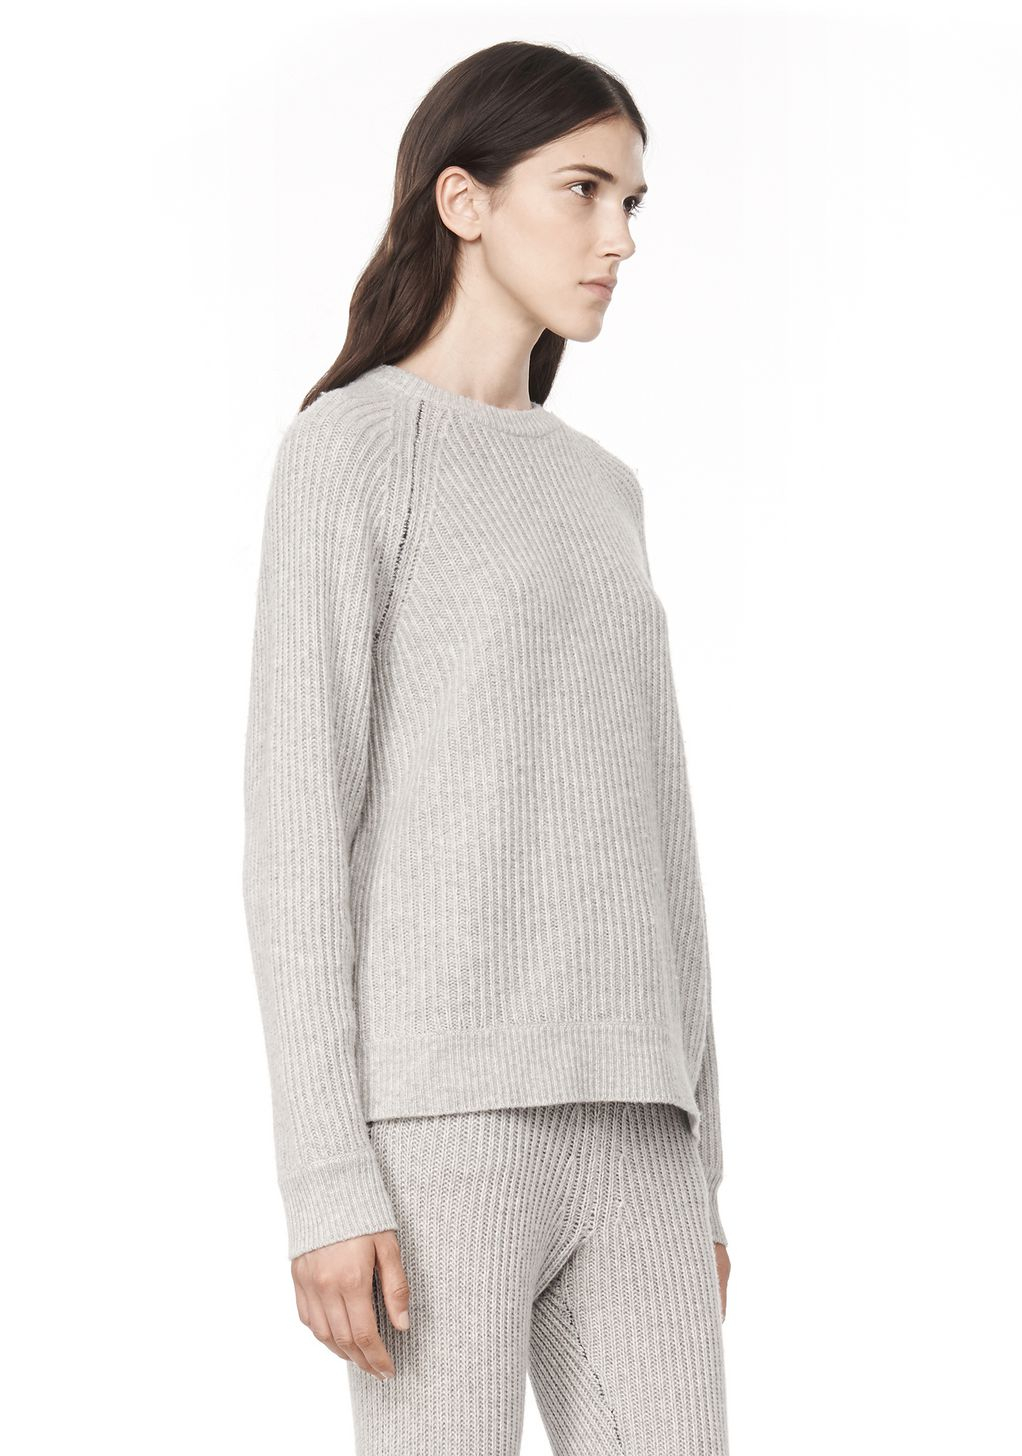 alexander wang cashmere blend crewneck pullover in gray lyst. Black Bedroom Furniture Sets. Home Design Ideas